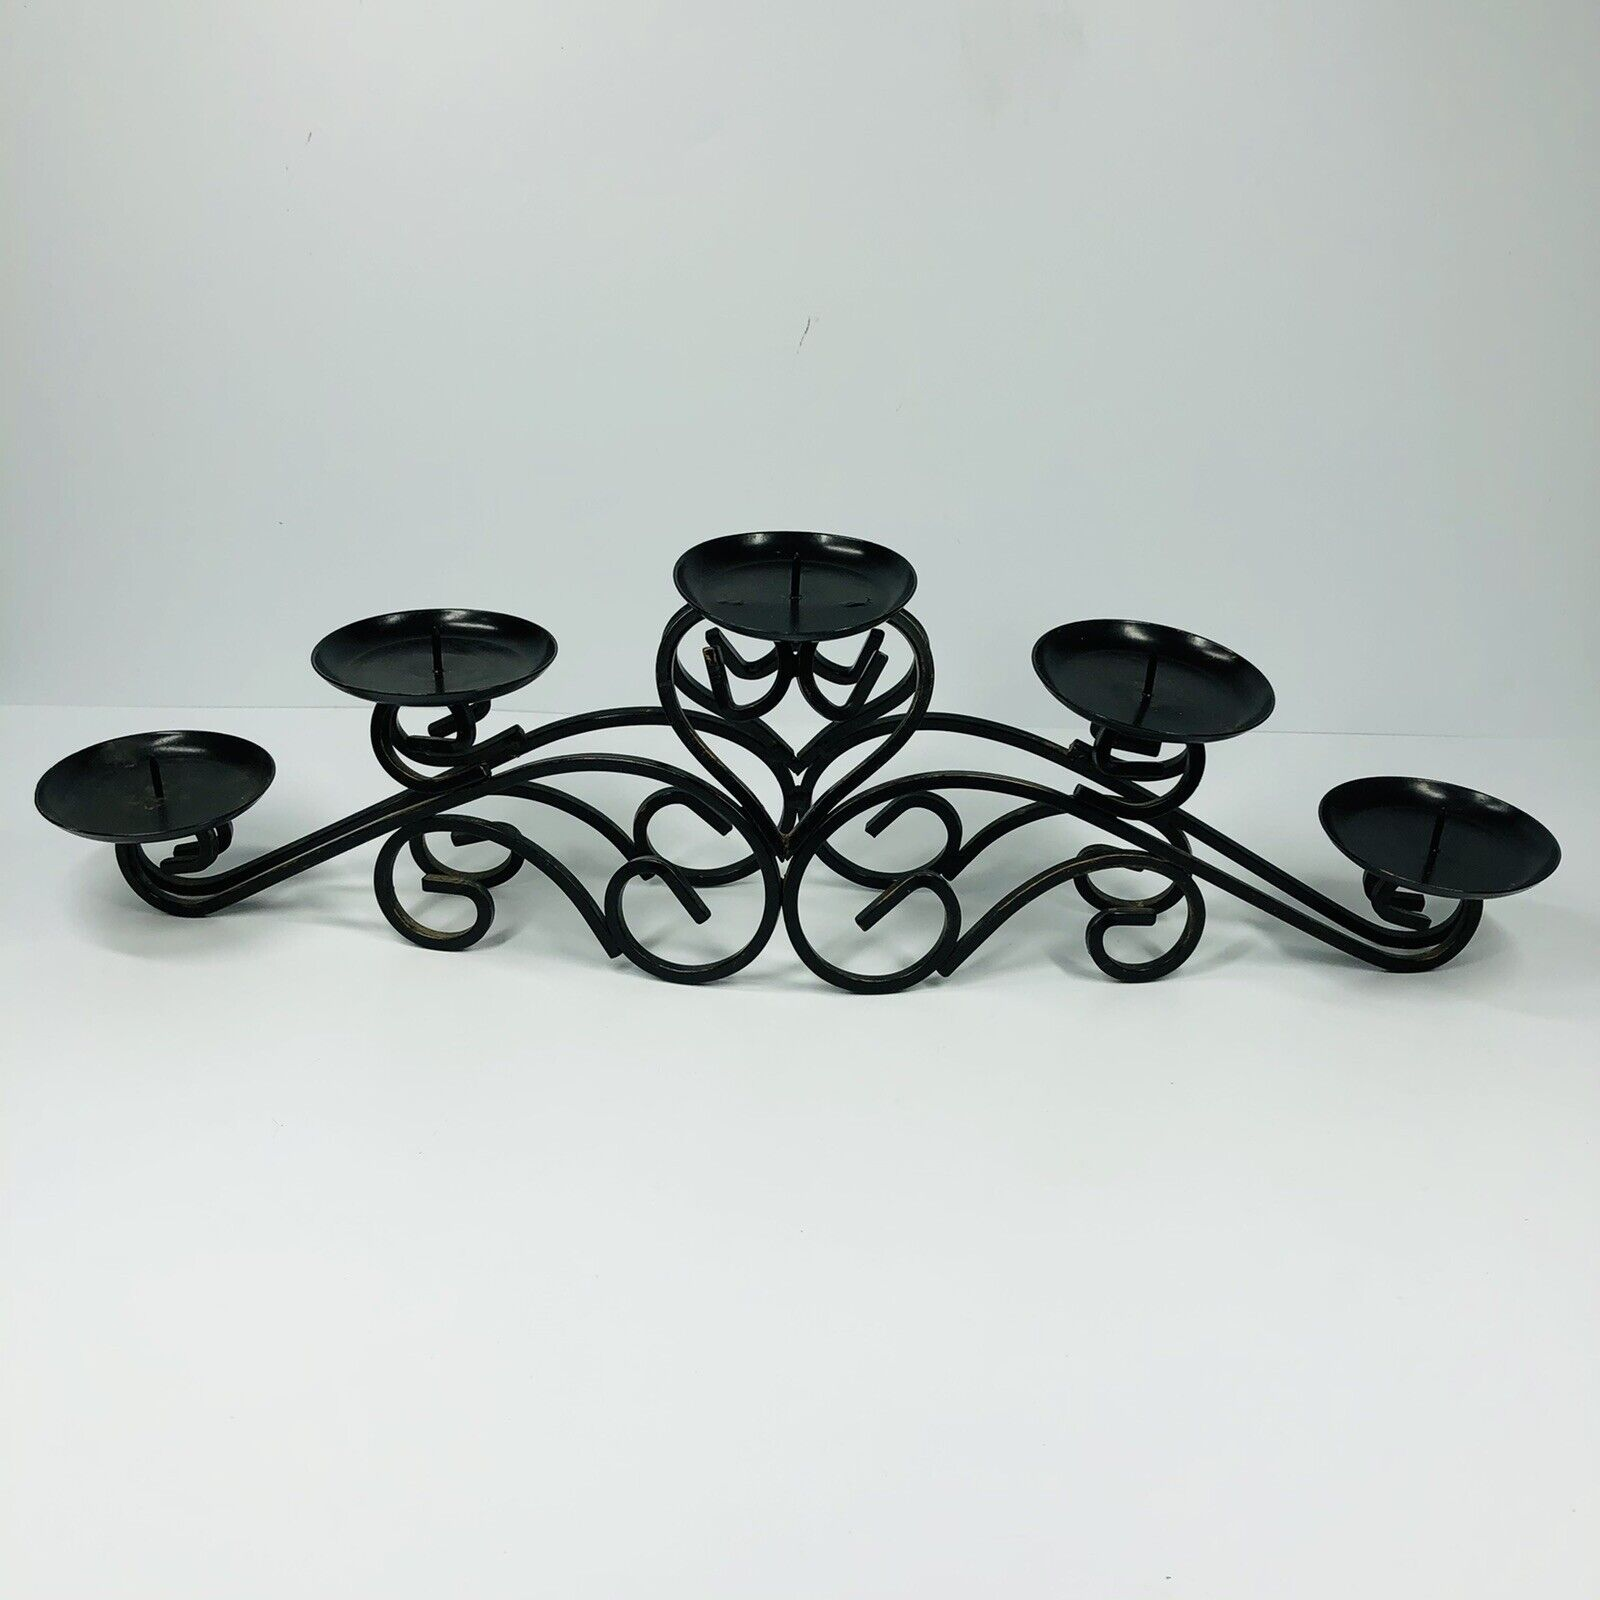 Candle Holder Totobay Round Black Wrought Iron Table Candleholder Centerpiece 6 For Sale Online Ebay